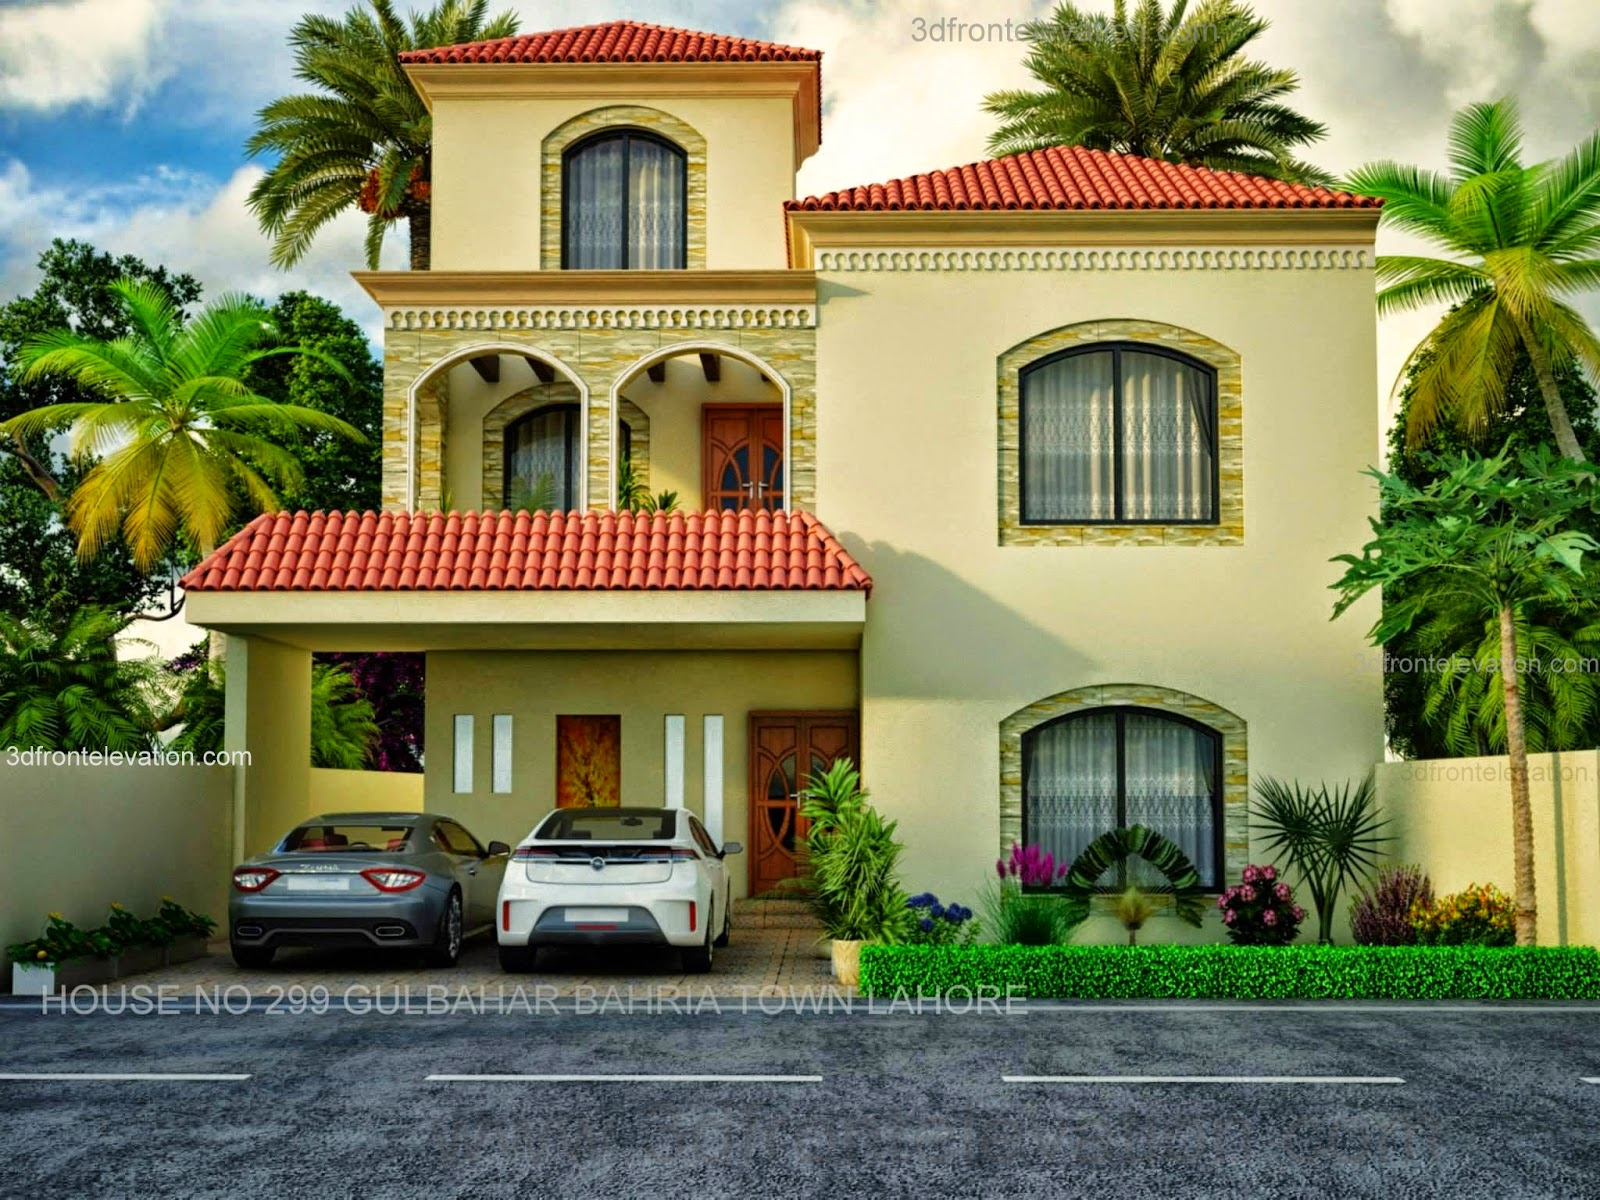 10 Marla  New House, 3dfrontelevation.com, European Design in Bahria Town, Lahore,